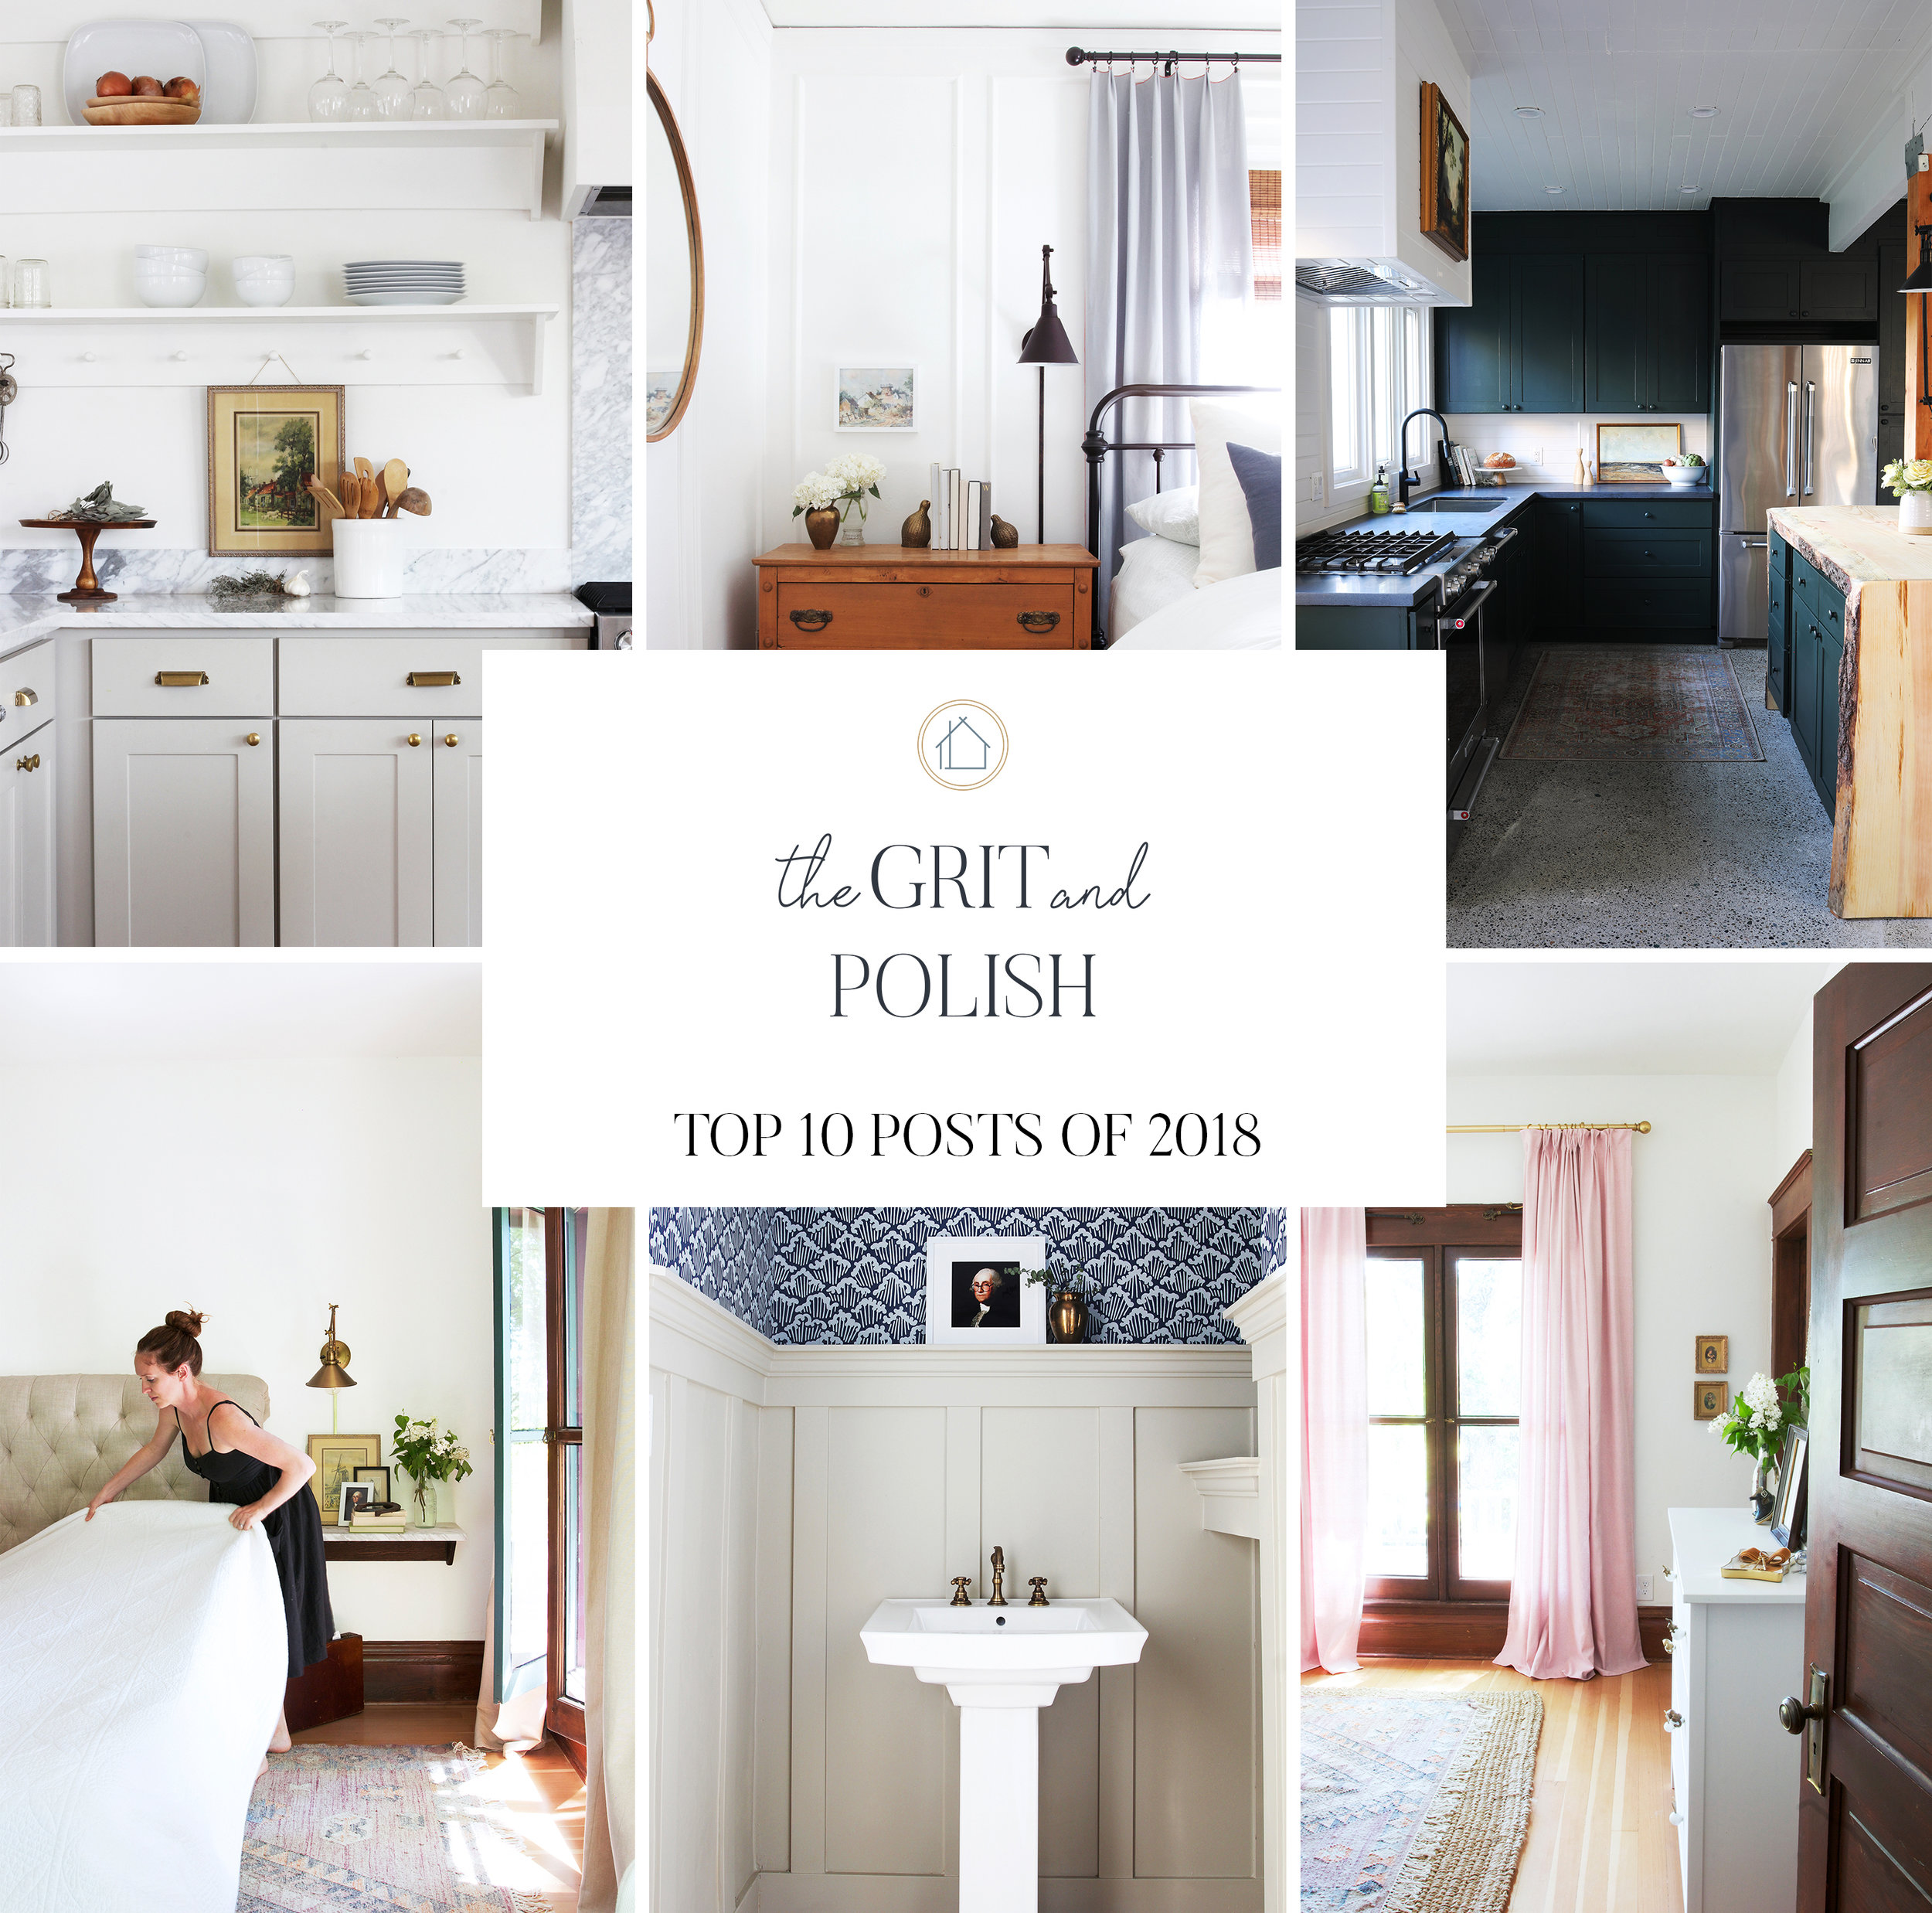 The Grit and Polish - Top 10 Posts of 2018.jpg